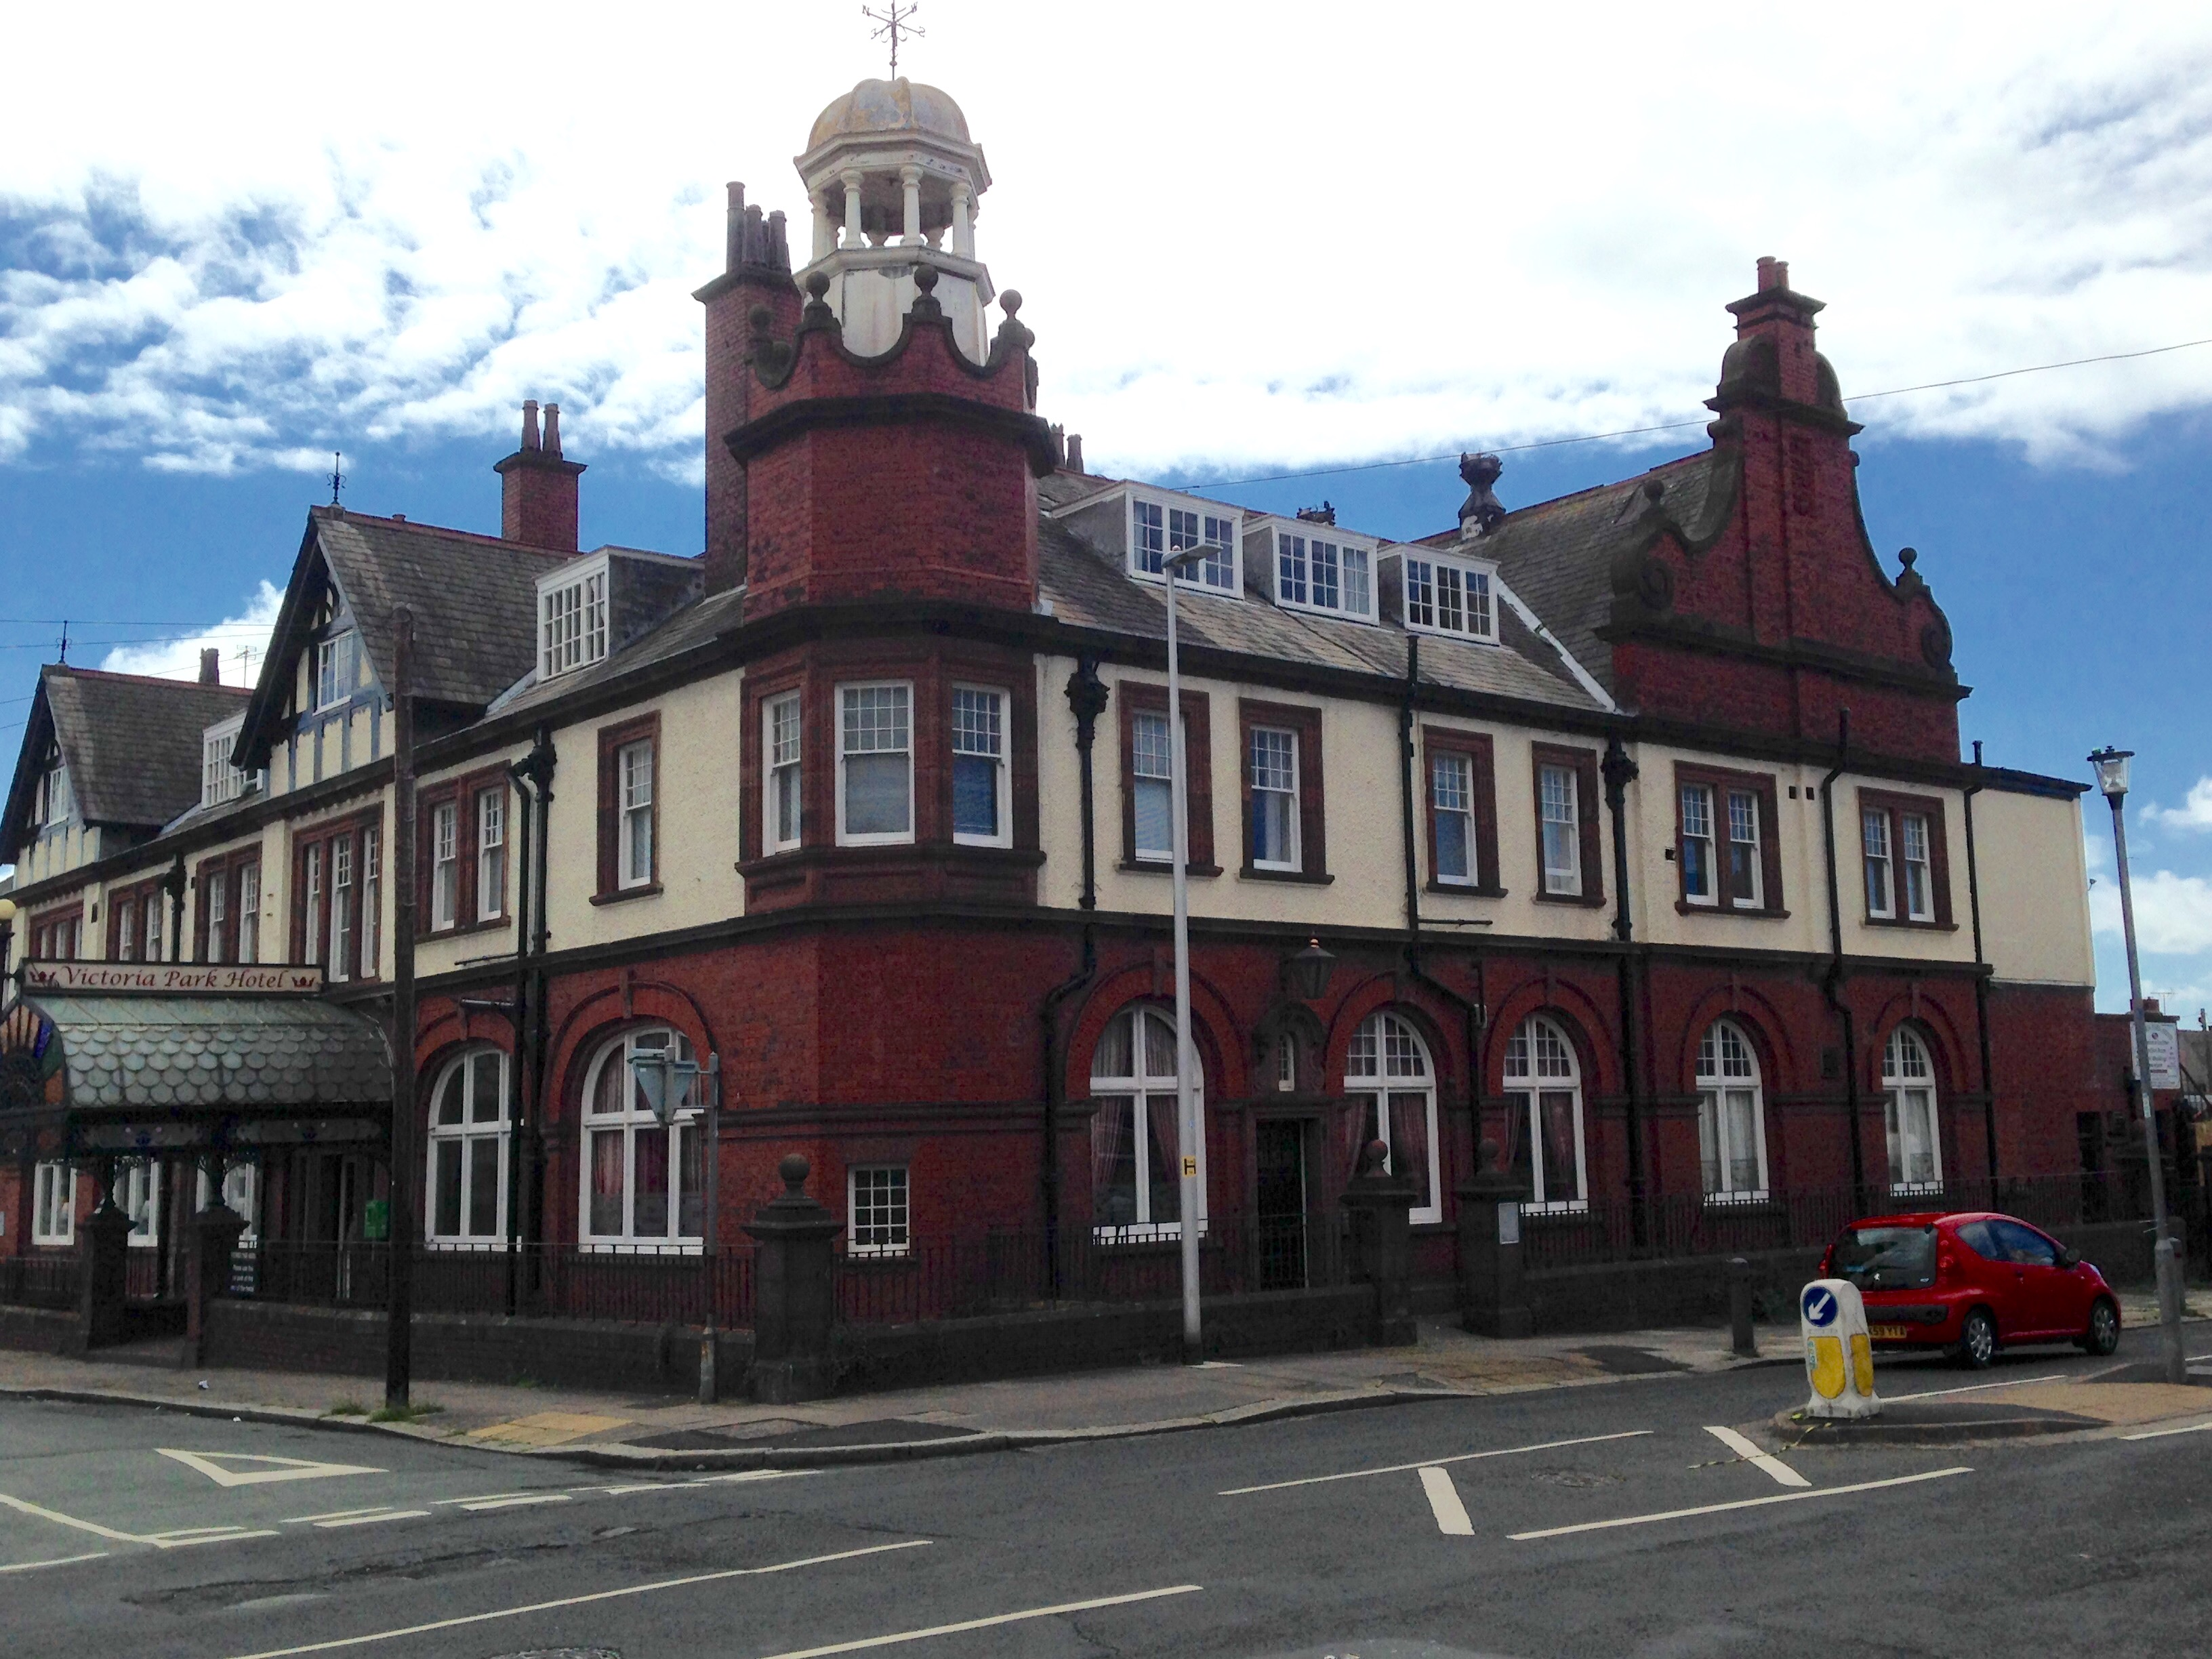 Victoria Park Hote, Barrow - Change of use to residential apartments